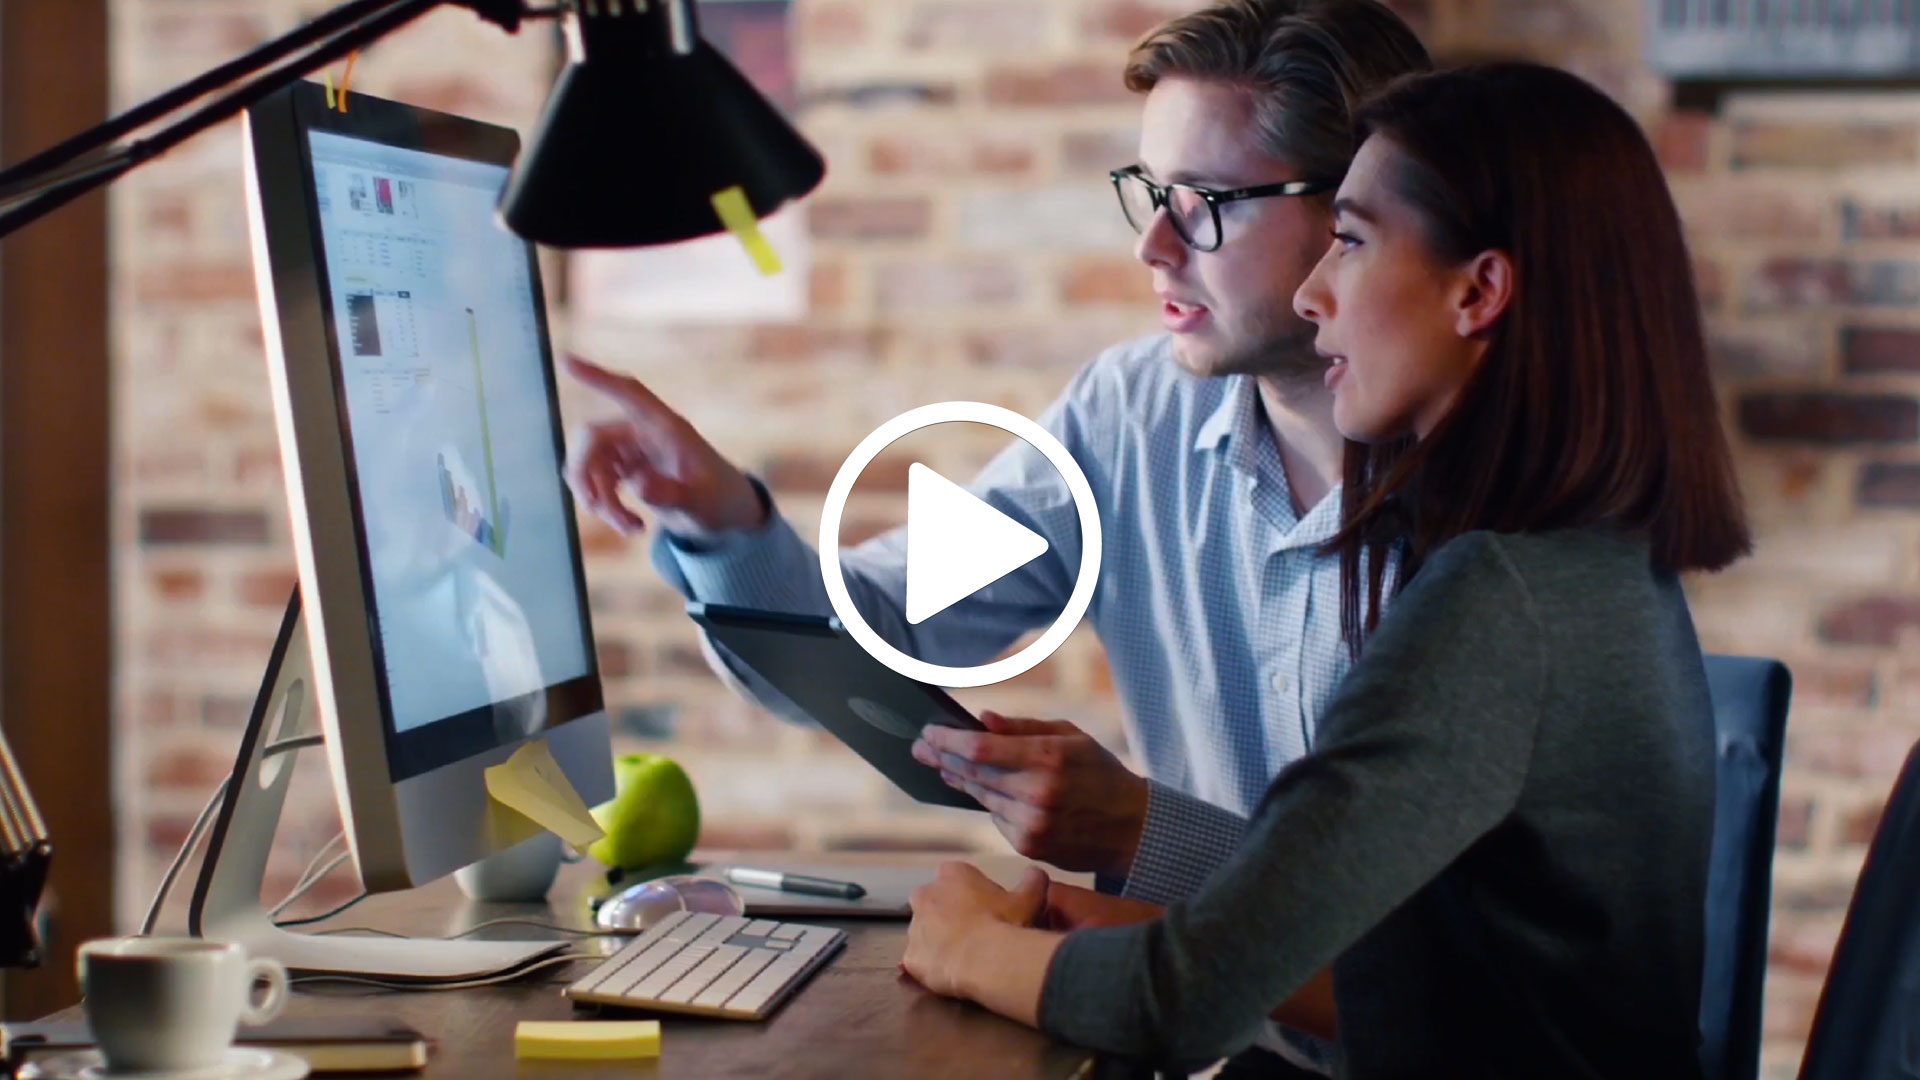 Watch our careers video for available job opening Client Executive in Los Angeles, CA